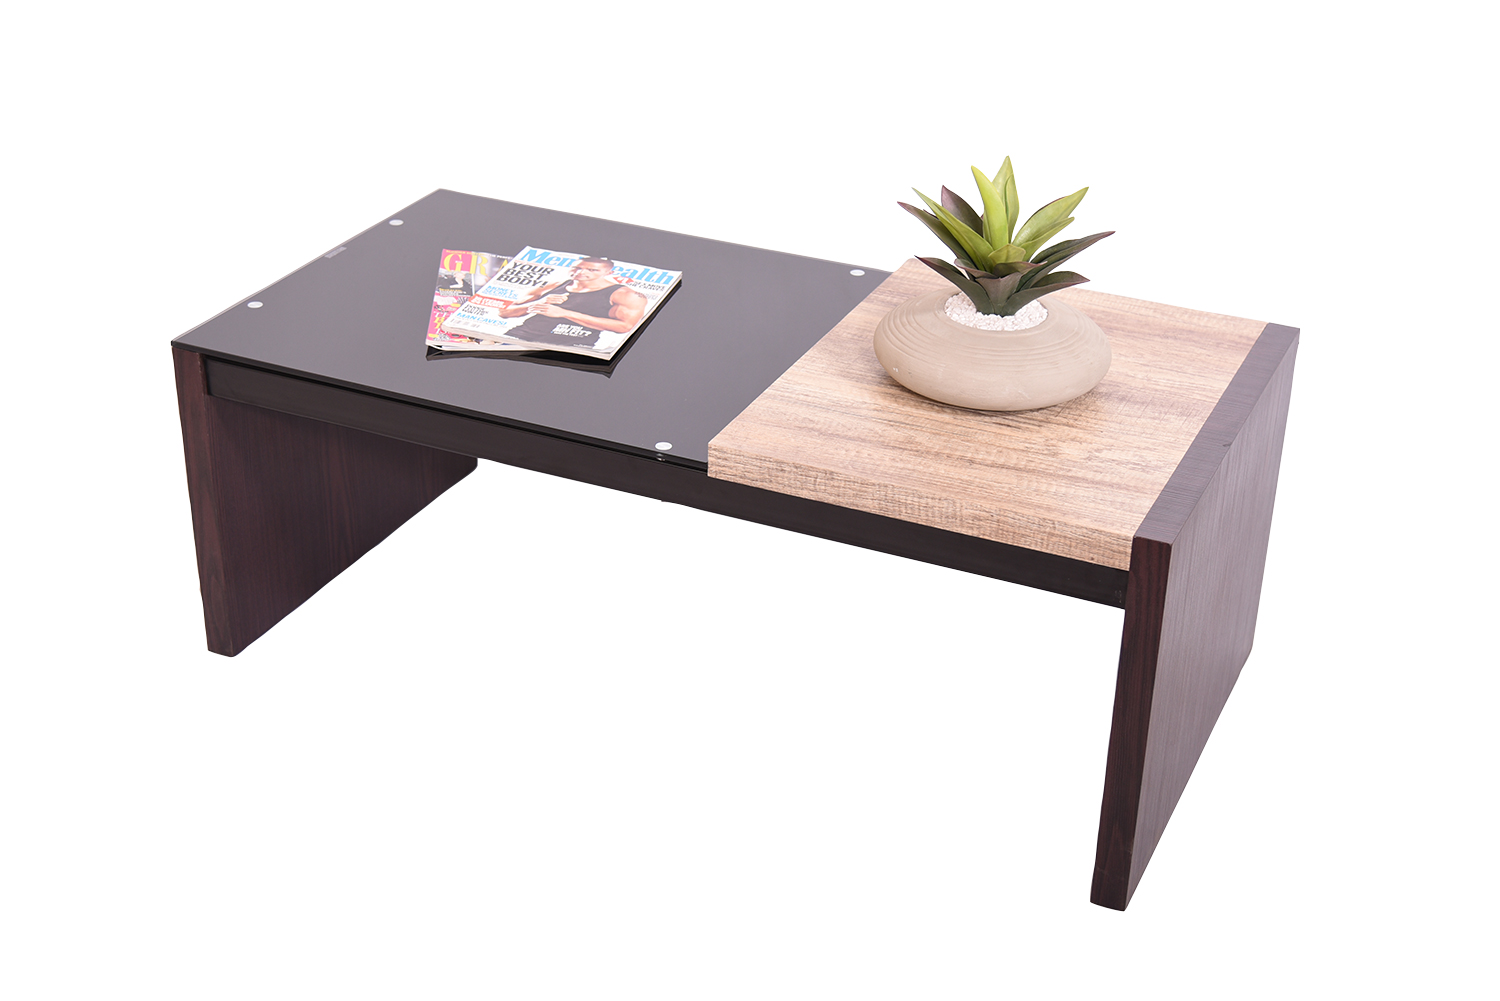 Tables brazilian coffee table was listed for r1 for Table th 00 02